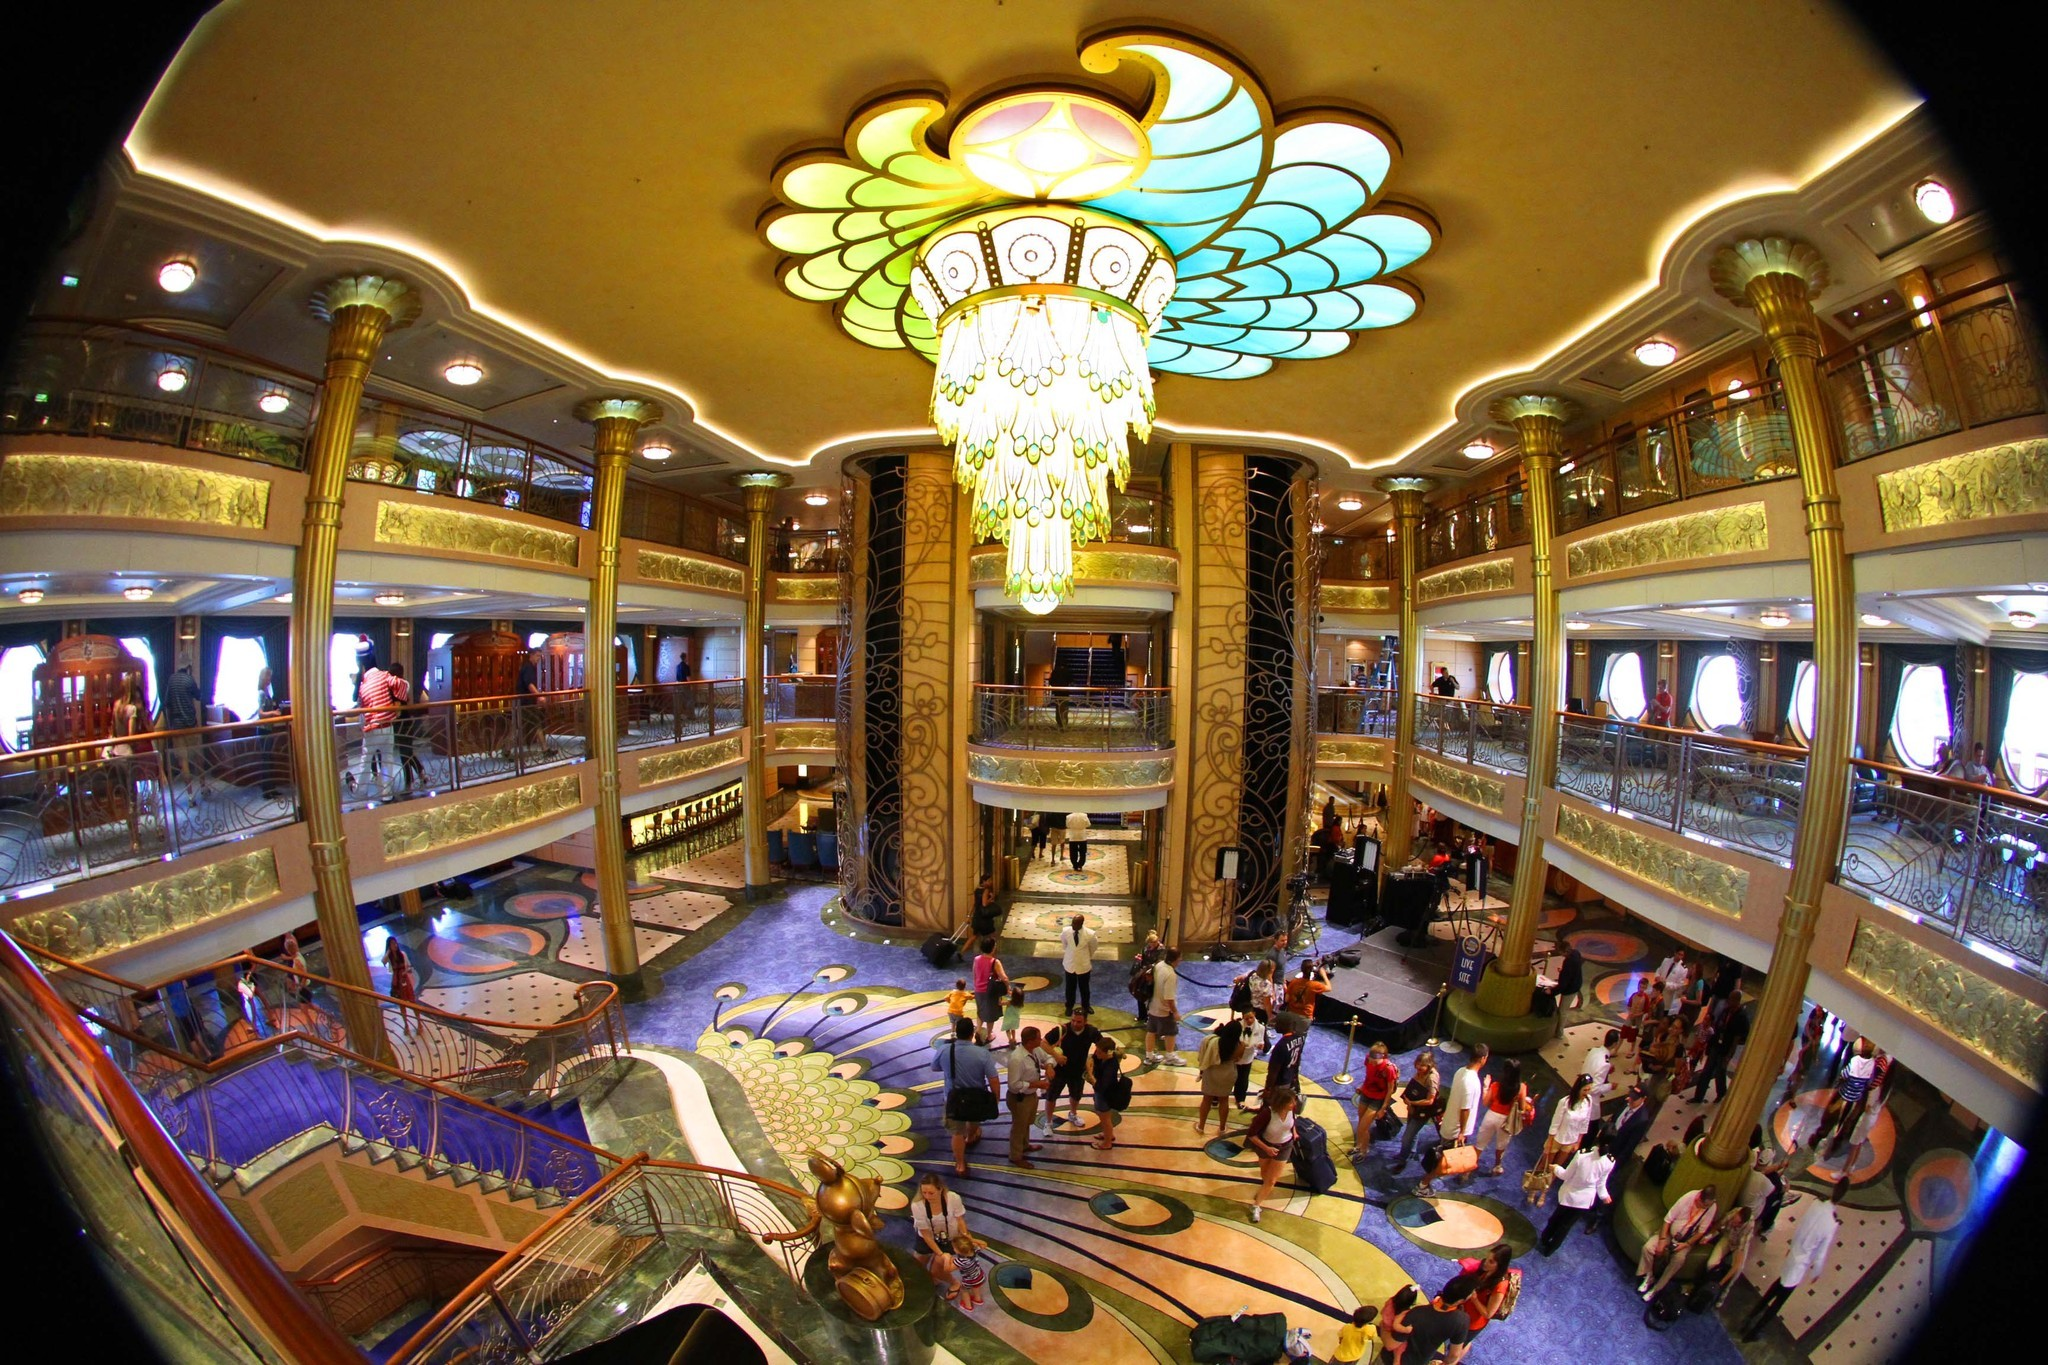 Pictures: New and soon-to-arrive cruise ships - Disney Fantasy inaugural cruise